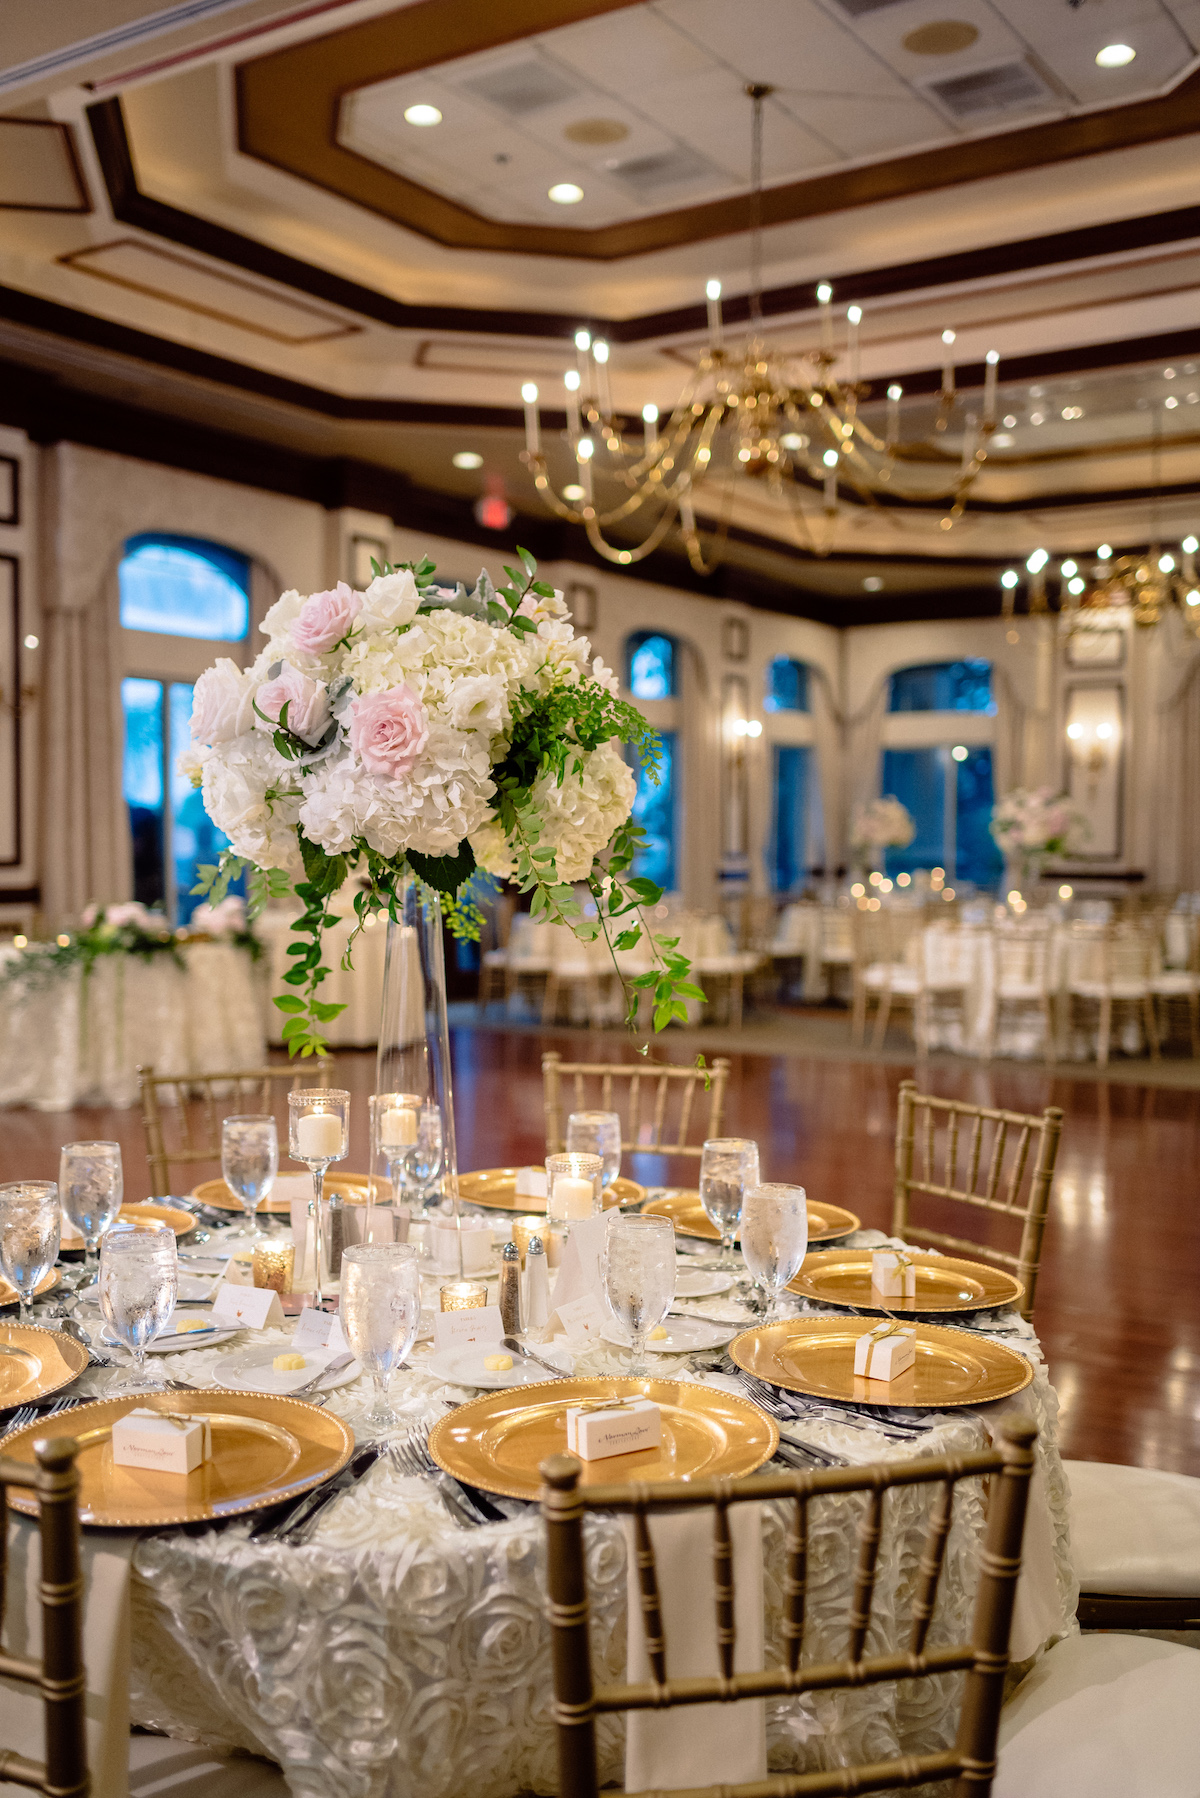 The Club at the Strand Wedding Reception Pink Blush White Cream Matt Steeves Photography Floral Symphony.jpg